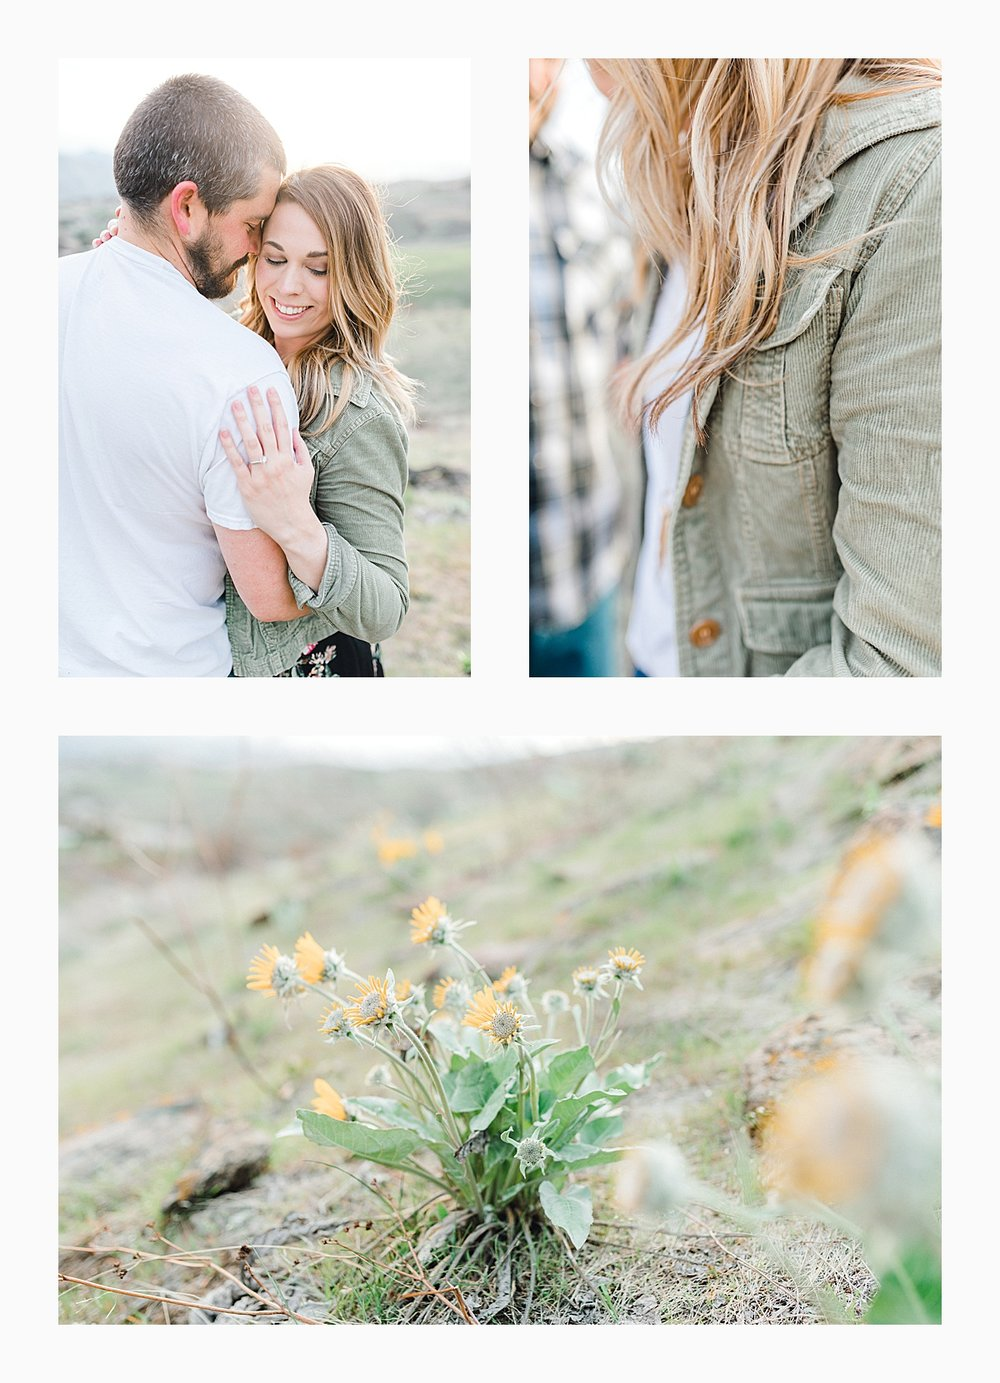 Pacific Northwest Engagement Session in the Sagebrush with Emma Rose Company who is a light and airy wedding photographer based in Seattle, Washington_0019.jpg